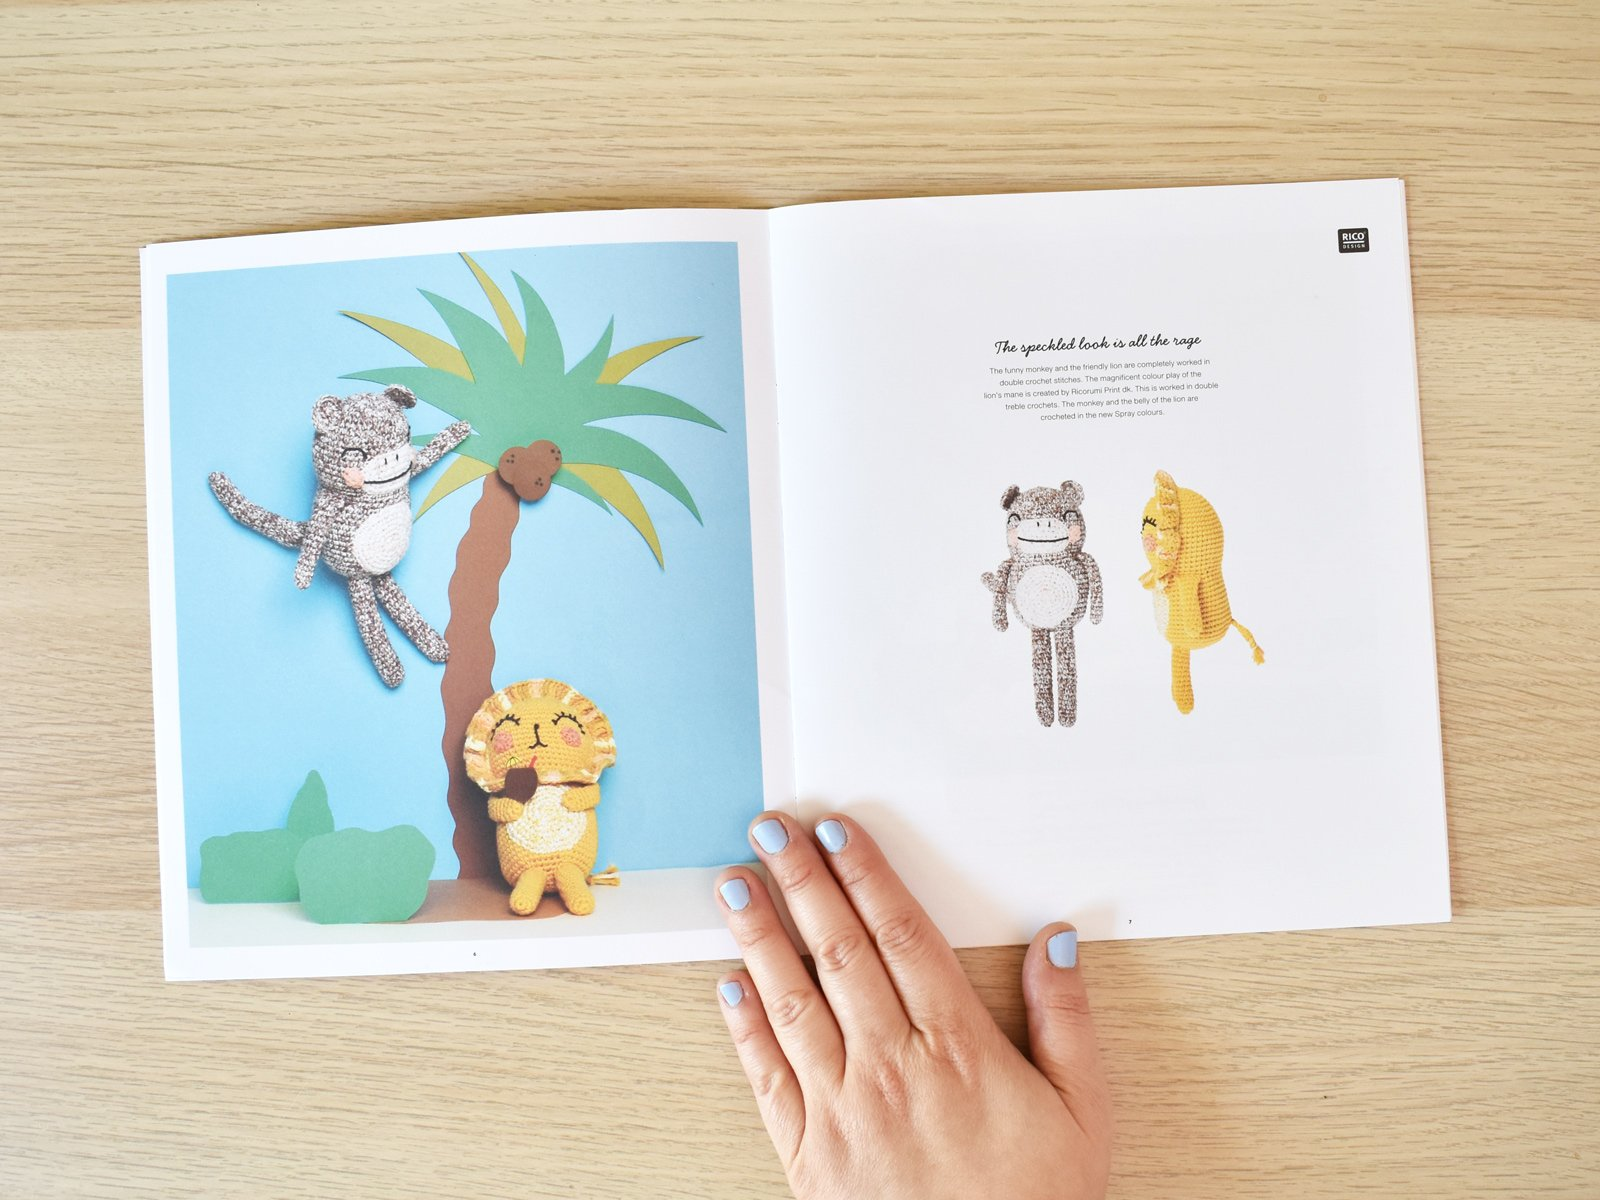 Ricorumi Wild Wild Animals amigurumi book is open to a page showing crochet monkey and crochet lion.